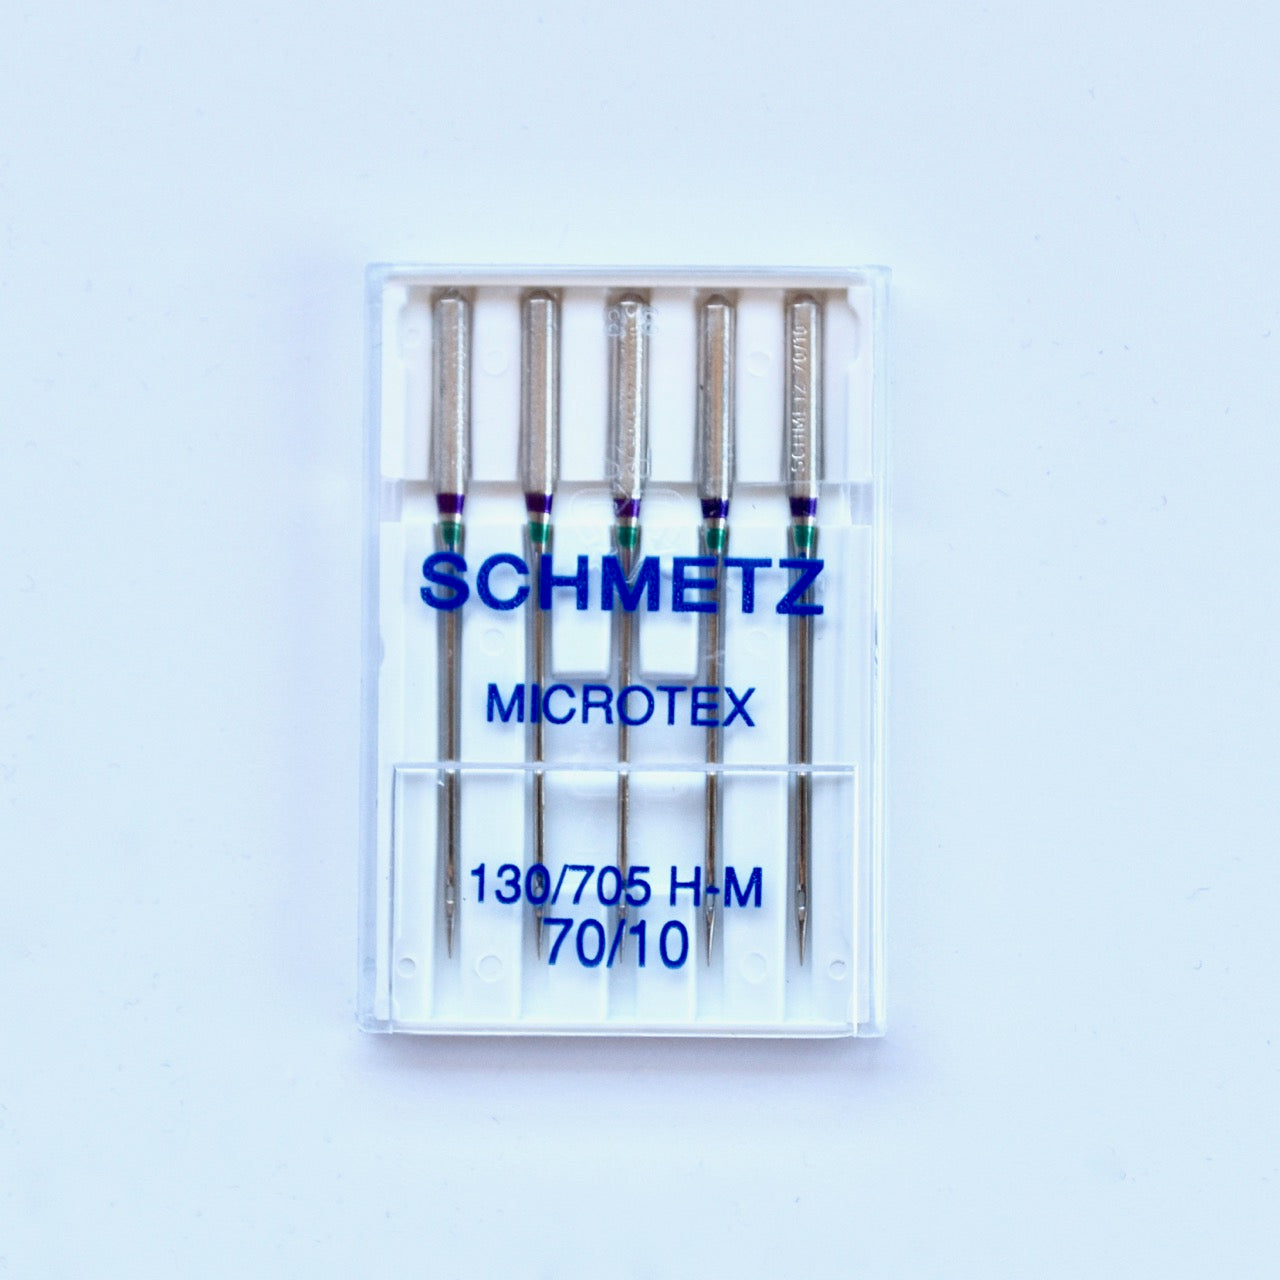 Machine Needles - Schmetz Microtex 70/10 - MaaiDesign